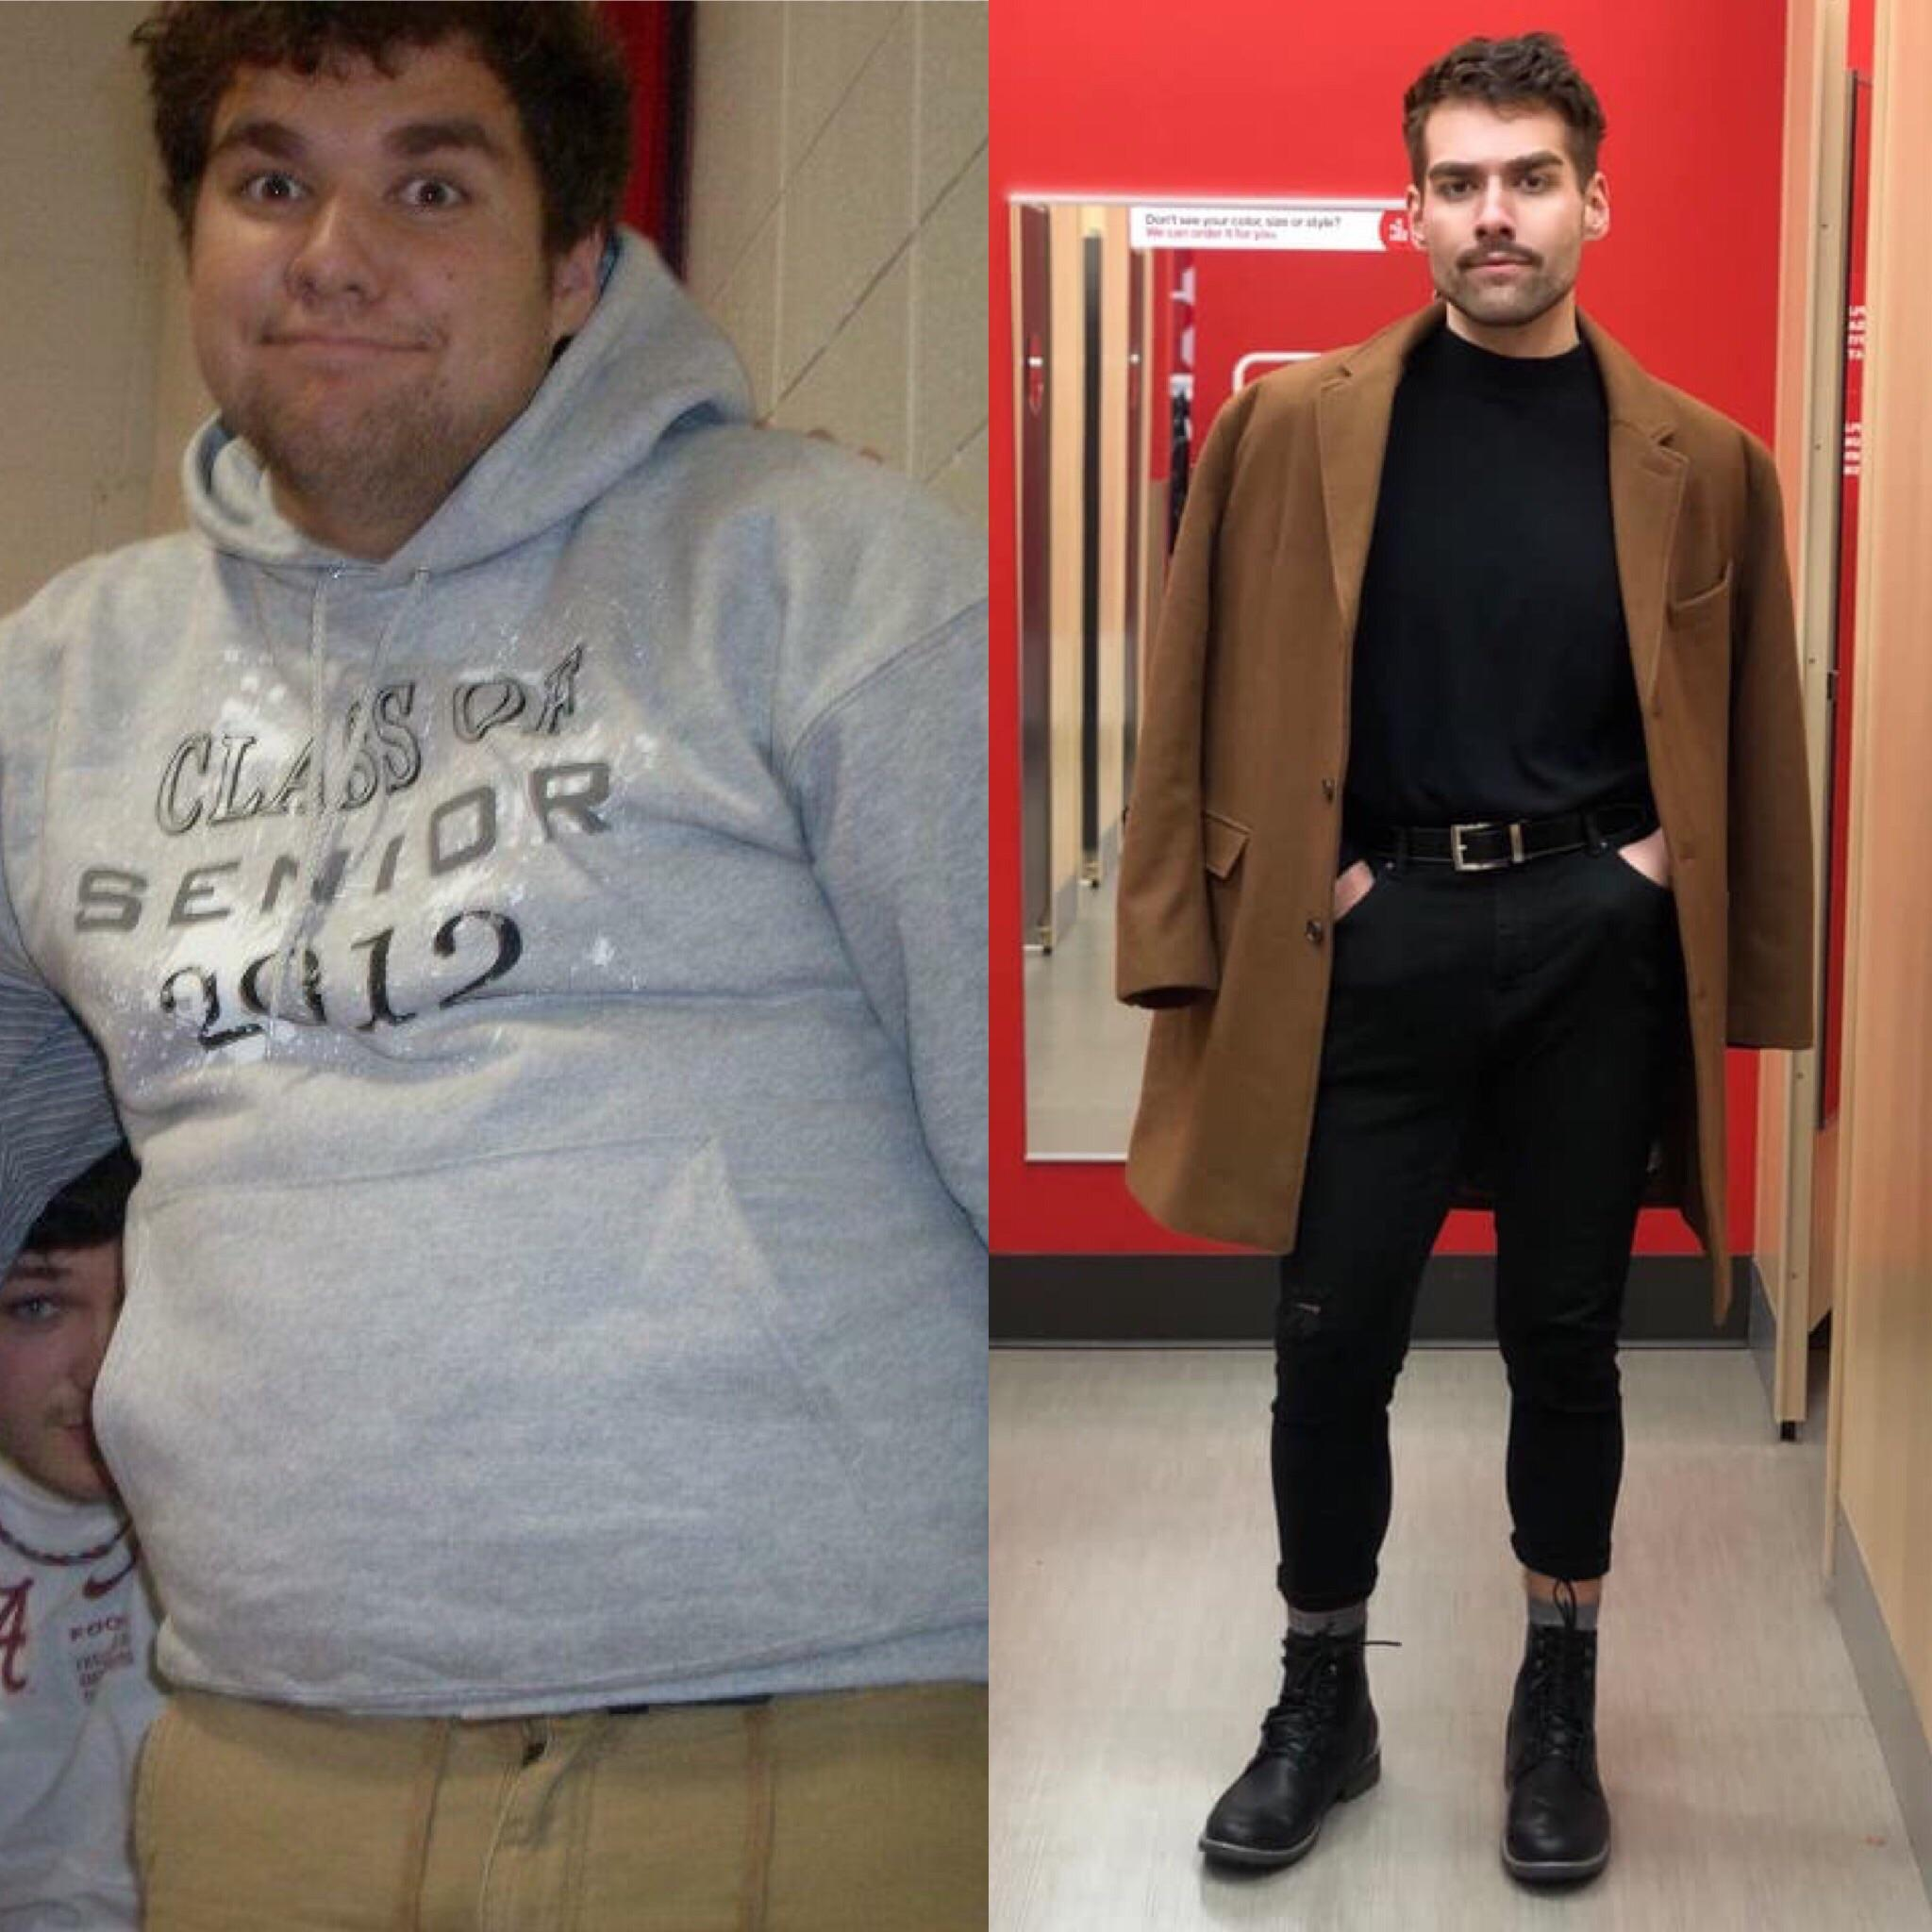 6 foot Male 110 lbs Fat Loss Before and After 285 lbs to 175 lbs